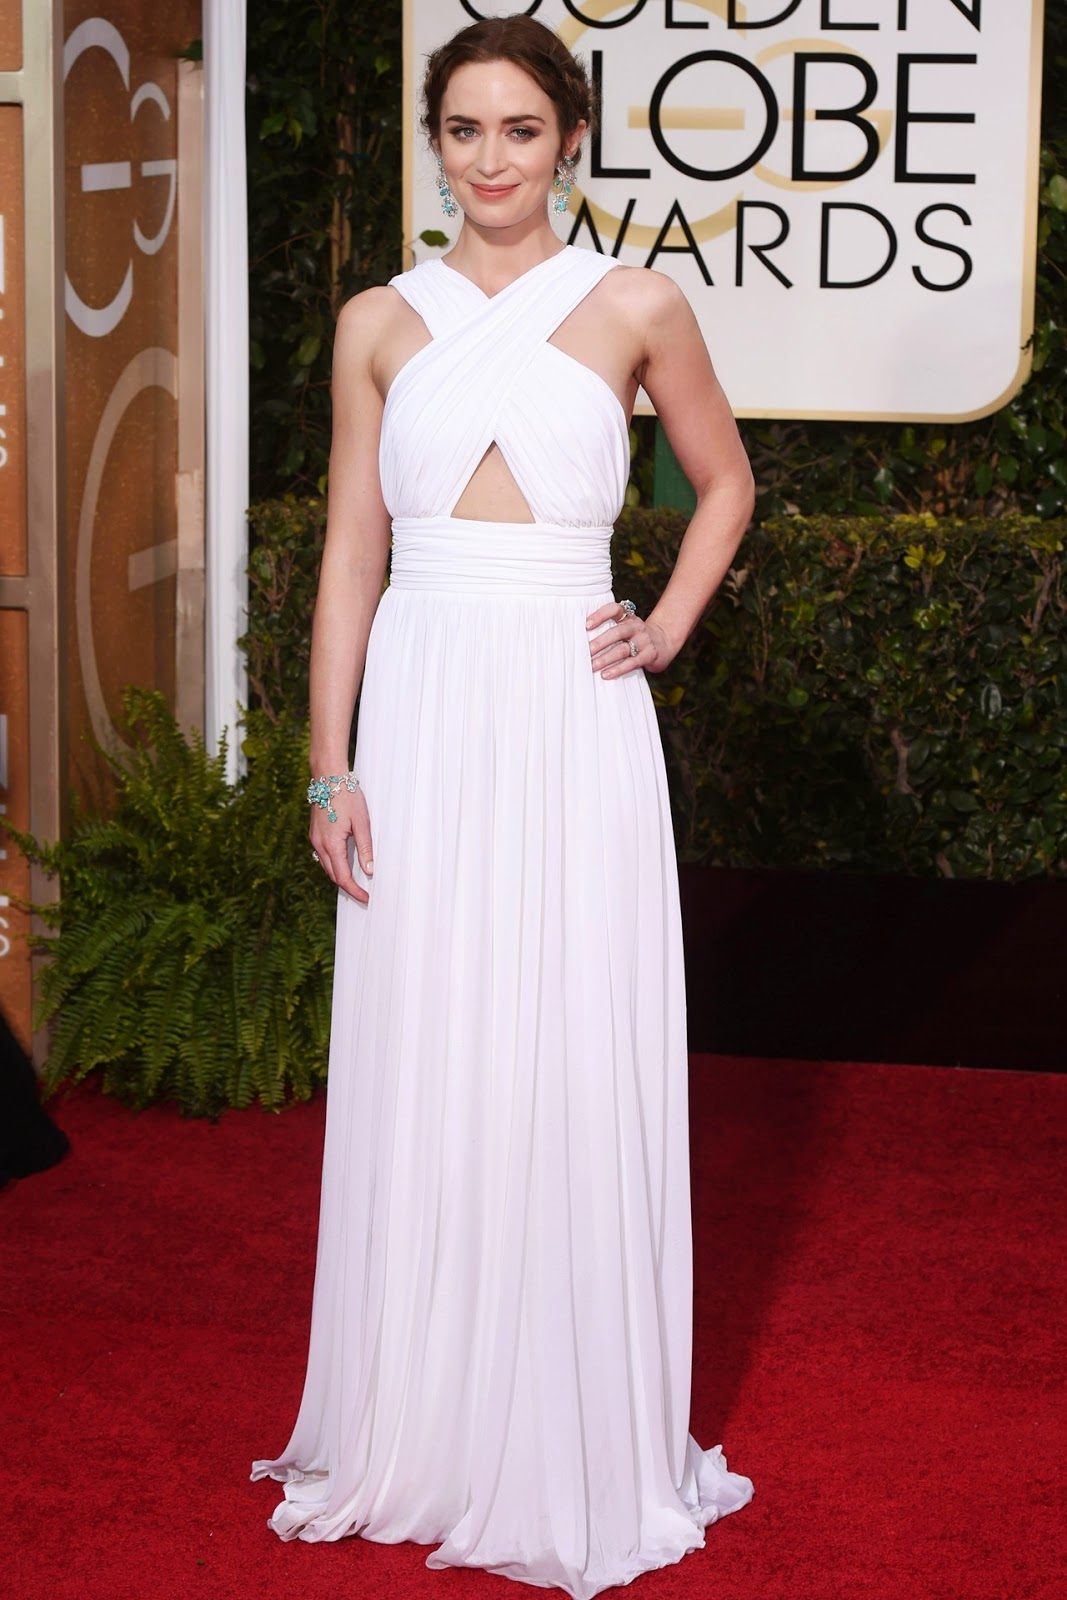 Emily Blunt in a custom-made Michael Kors gown at the Golden Globe Awards 2015